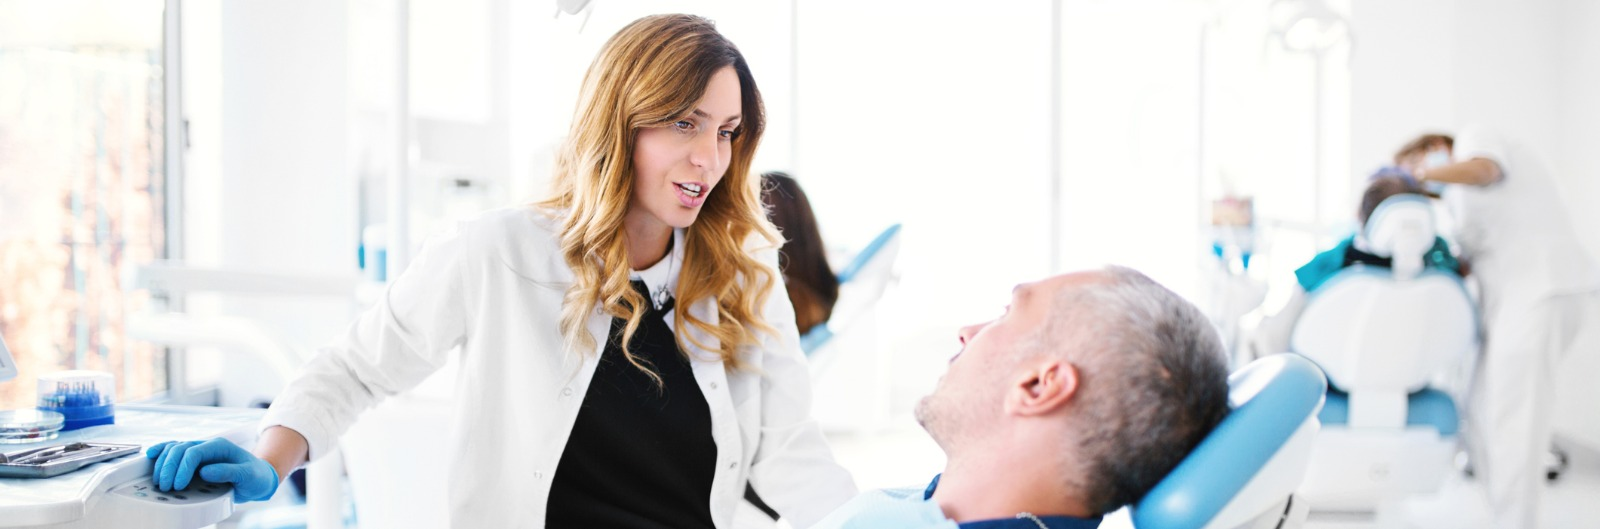 dental-consultation-picture-1600x529.jpg